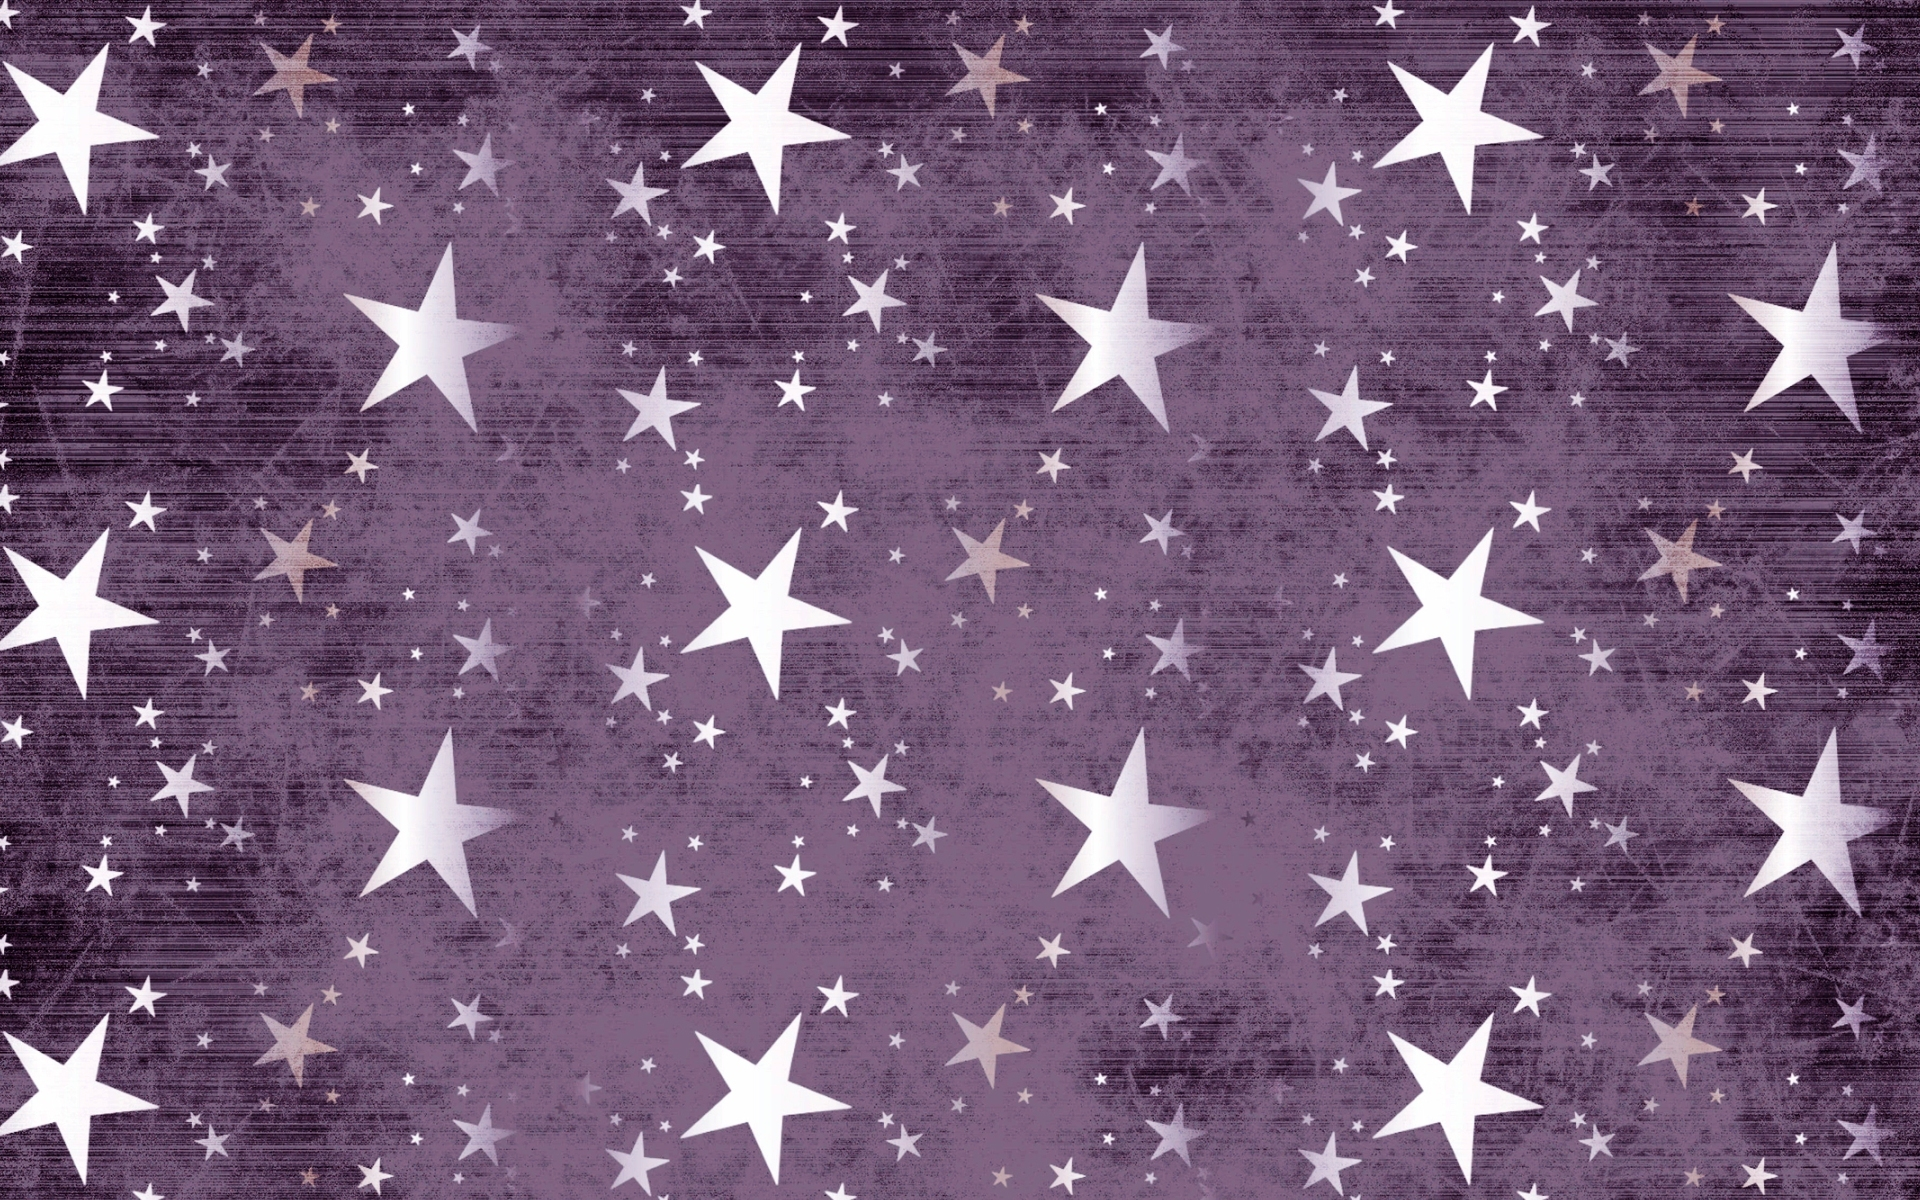 Michael Alldredge Wallpapers Background With Stars Image category Star Patterns